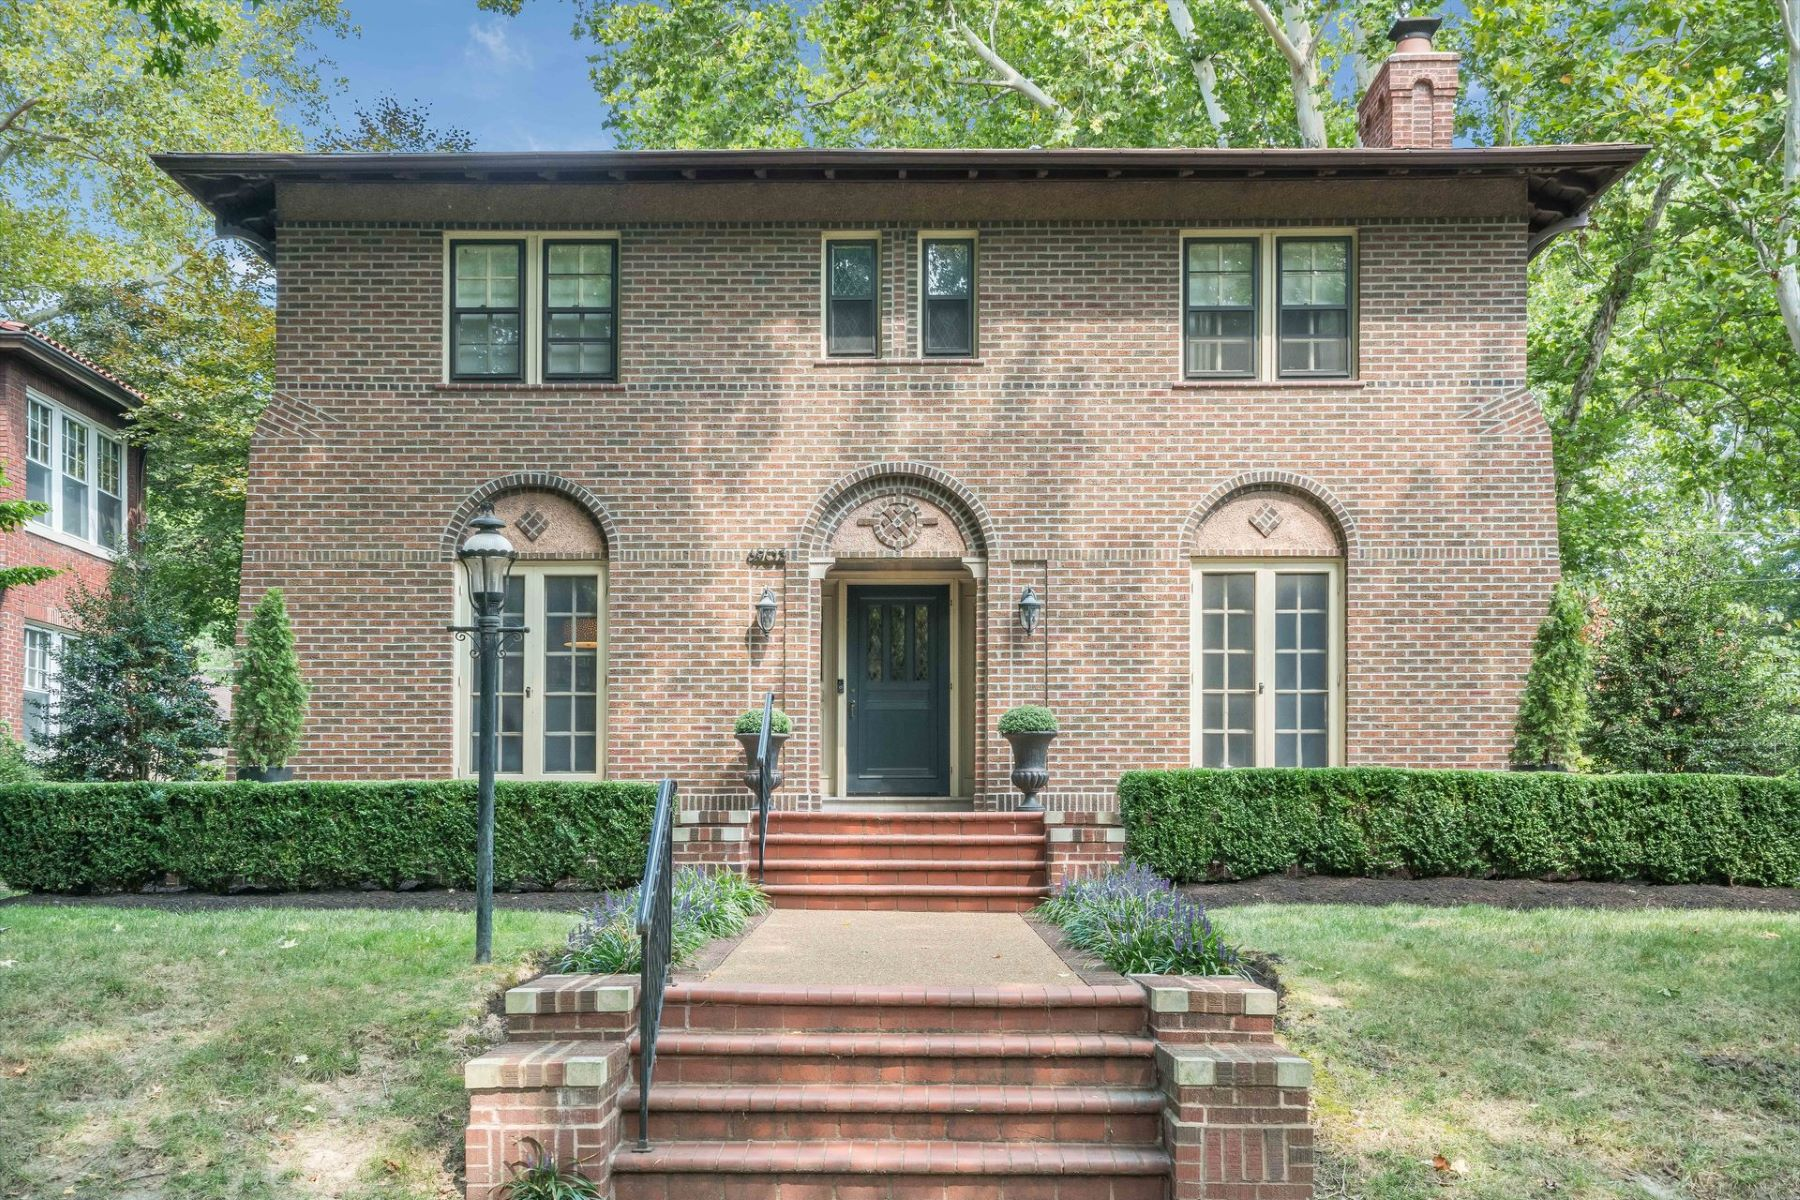 Single Family Homes for Sale at Stately Elegant Home In Coveted Ames Place 6903 Waterman Avenue University City, Missouri 63130 United States